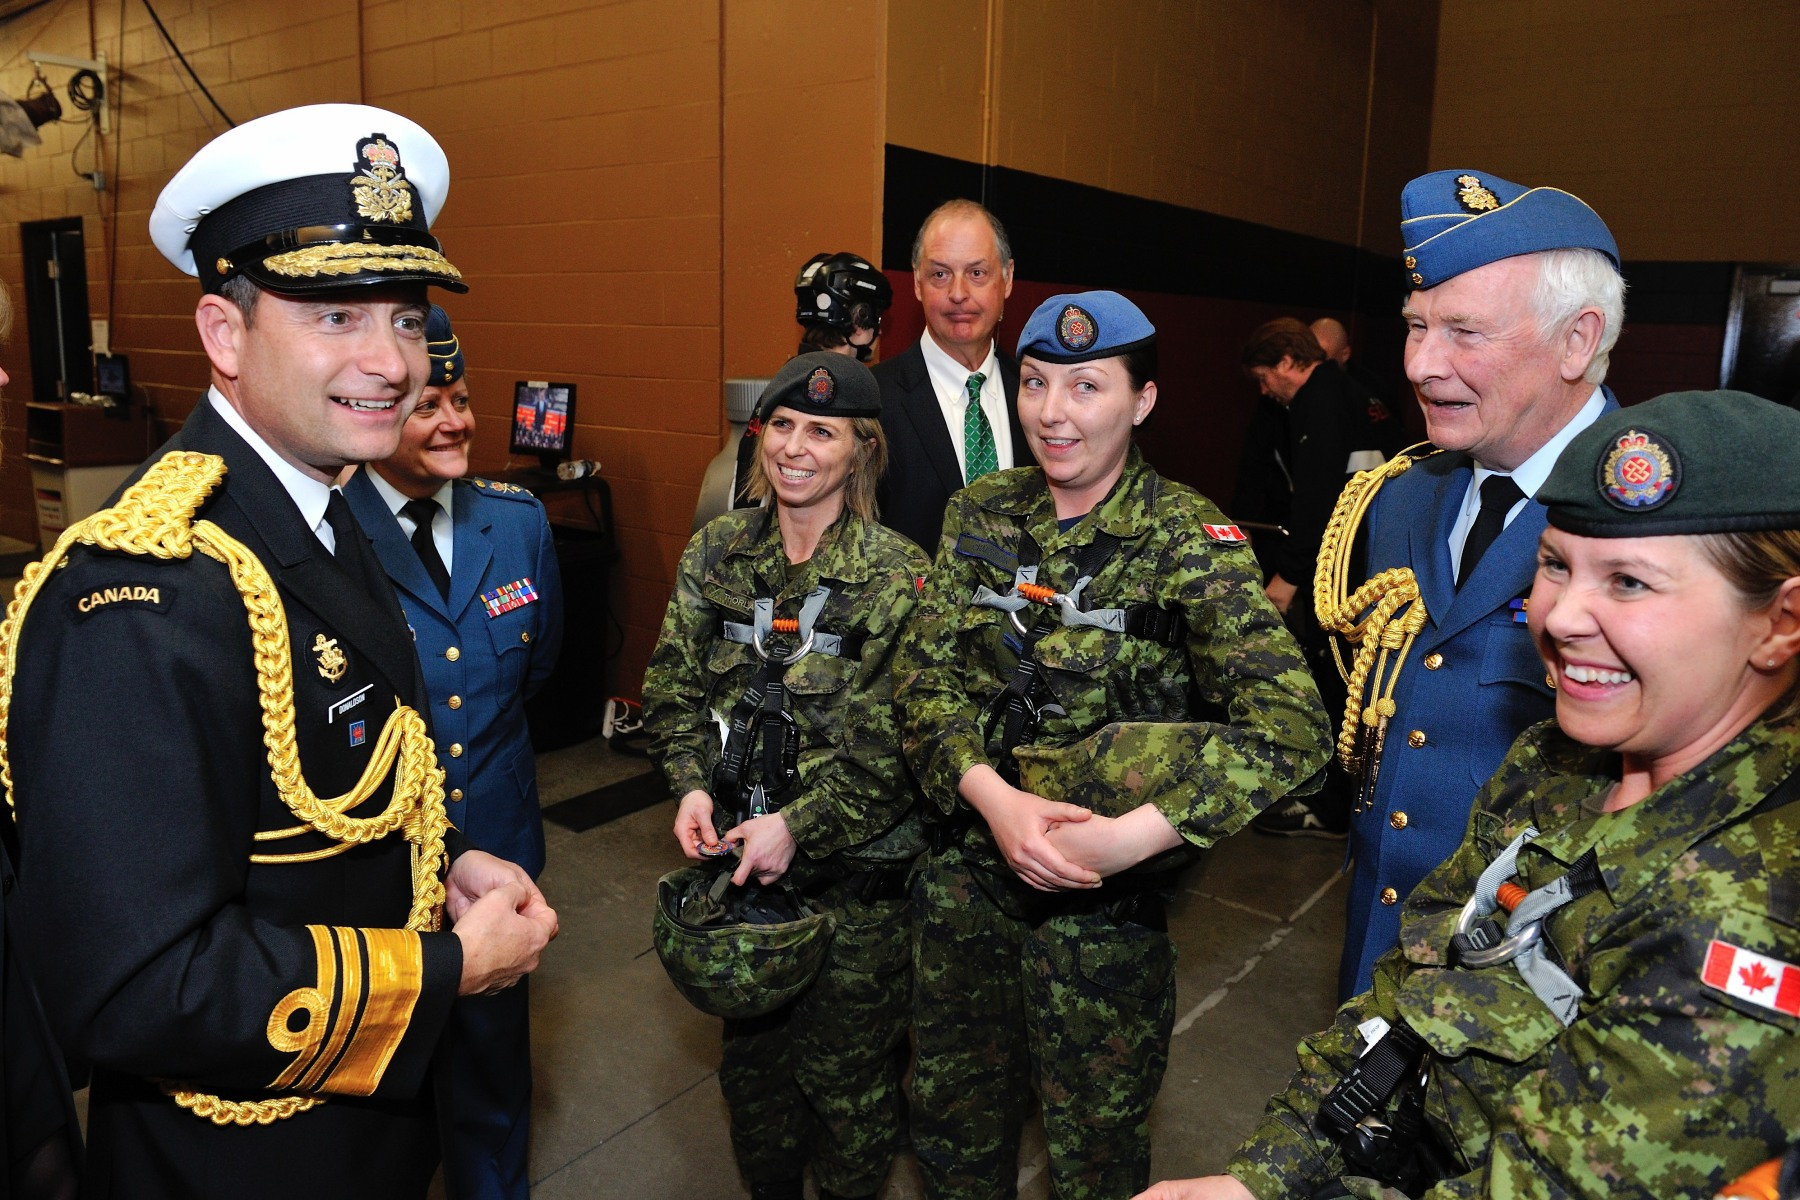 His Excellency and Vice-Admiral Donaldson met four female Canadian Forces members who conducted a rappelling demonstration onto the ice.